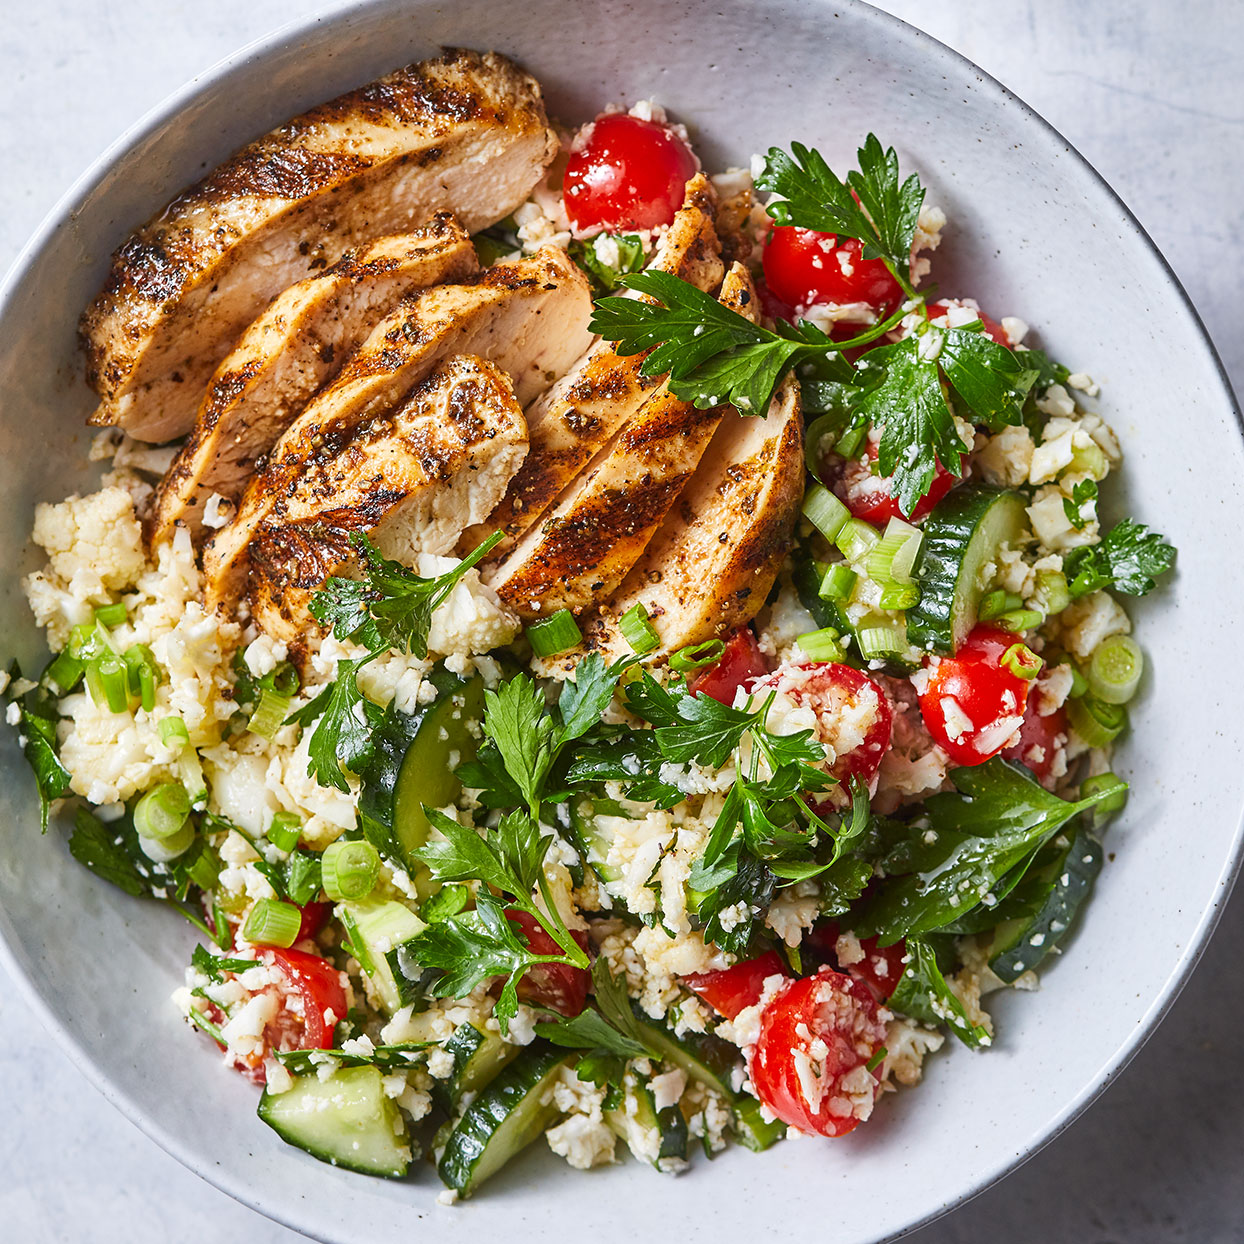 Chicken breasts on the grill have a smoky flavor that's enhanced with an easy spice rub. We chose flat-leaf parsley in this salad because it has a stronger herbal taste than its sometimes-bitter curly counterpart. Source: EatingWell Magazine, April 2020